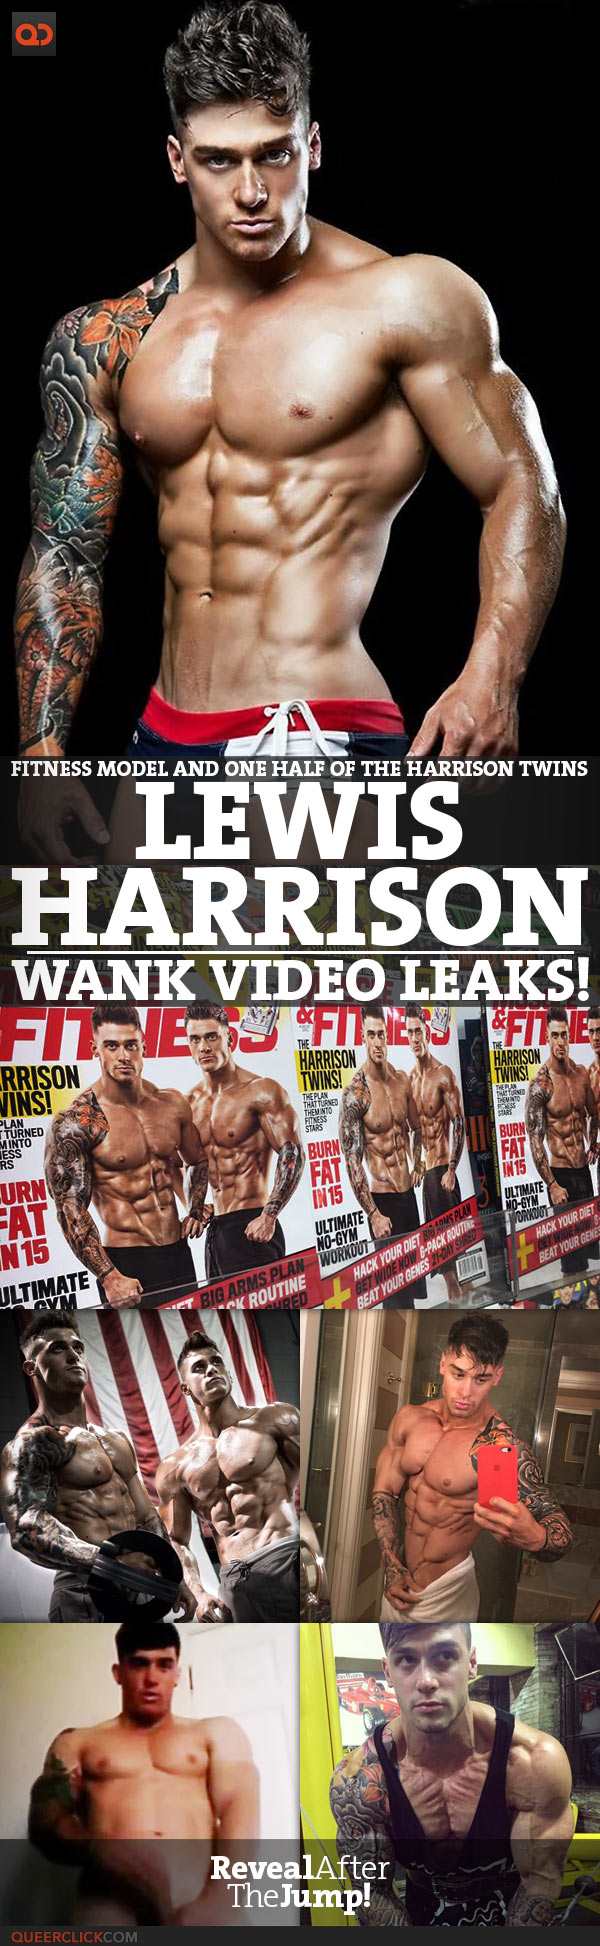 Lewis Harrison, Fitness Model And One Half Of The Harrison Twins, Wank Video Leaks!